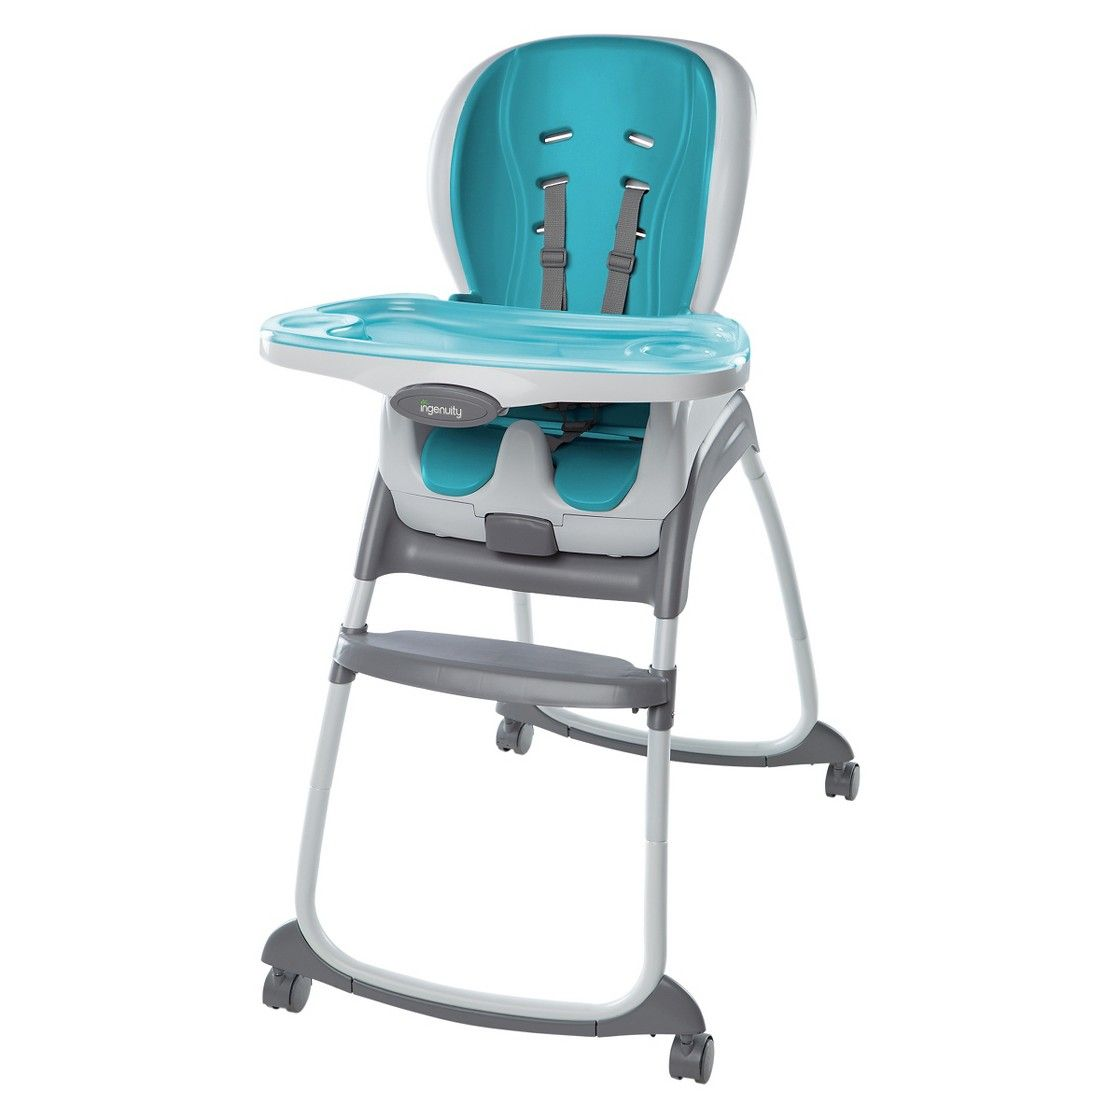 ingenuity trio 3 in 1 smartclean high chair baby room best baby high chair best high chairs. Black Bedroom Furniture Sets. Home Design Ideas